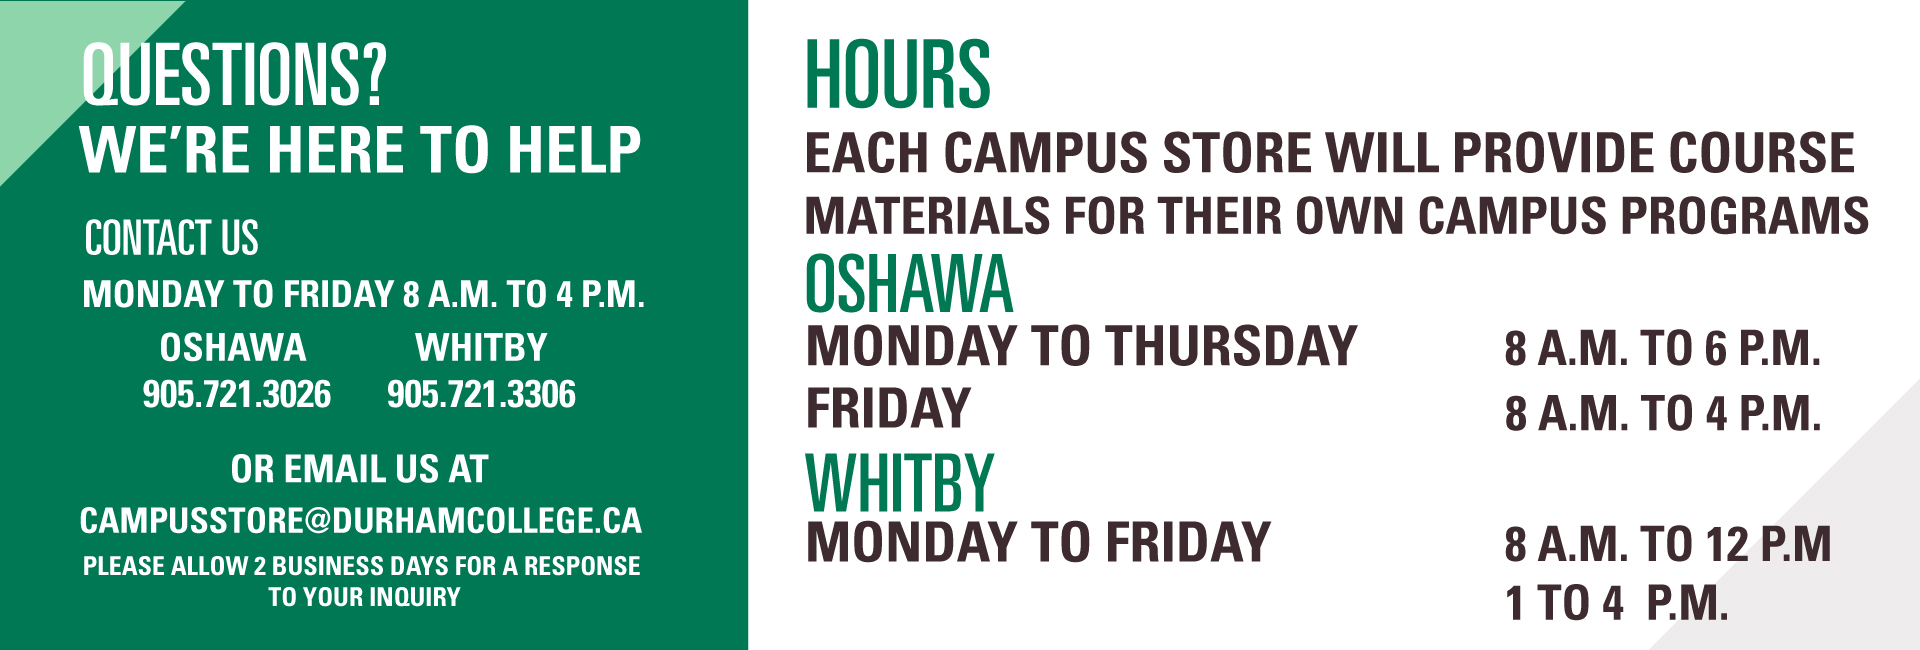 Campus store open 8 A.M. to 4 P.M. Monday to Friday